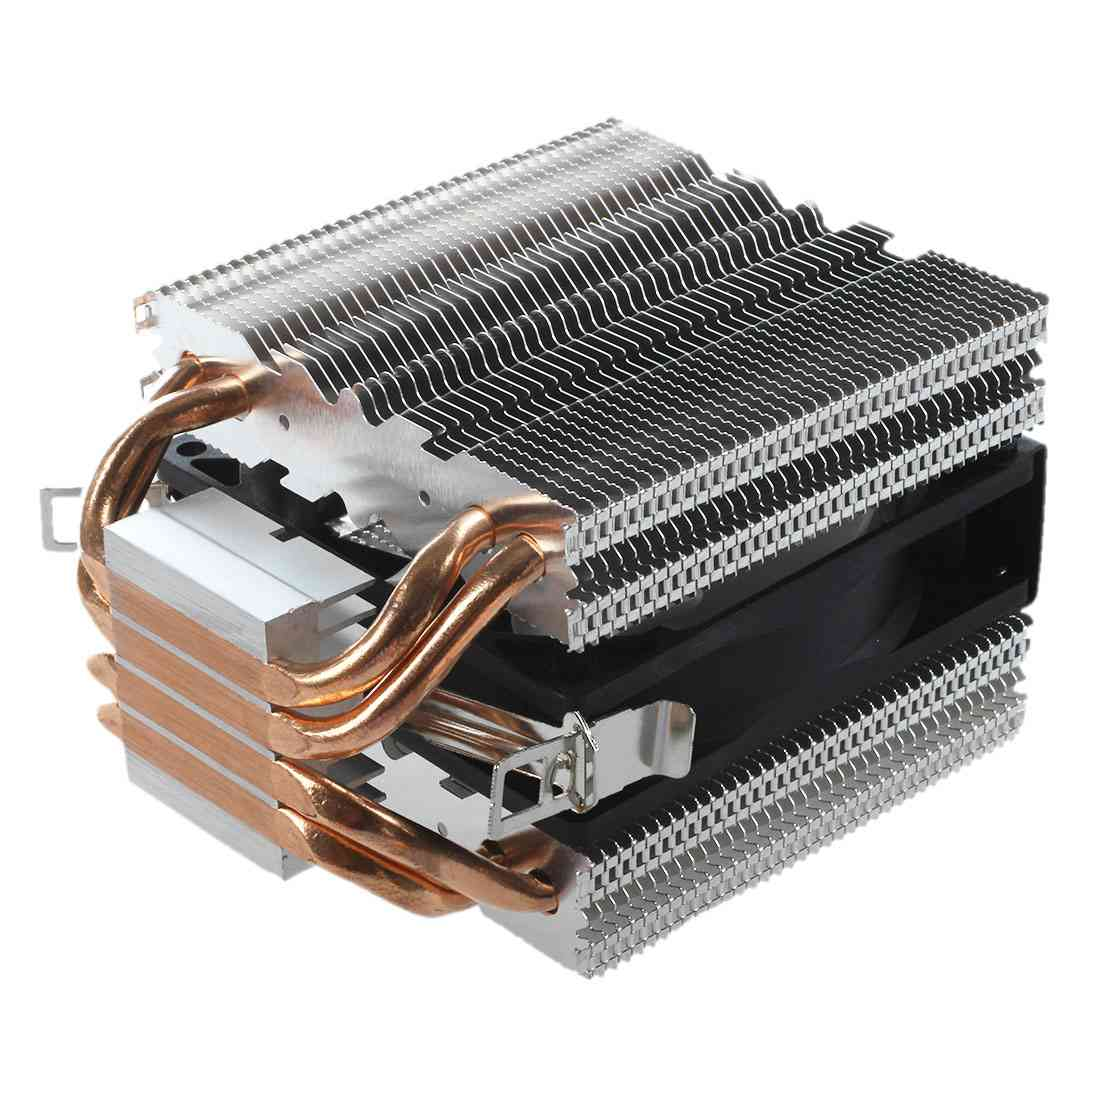 4 Heatpipe CPU Cooler Heat Sink for Intel LGA 1150 1151